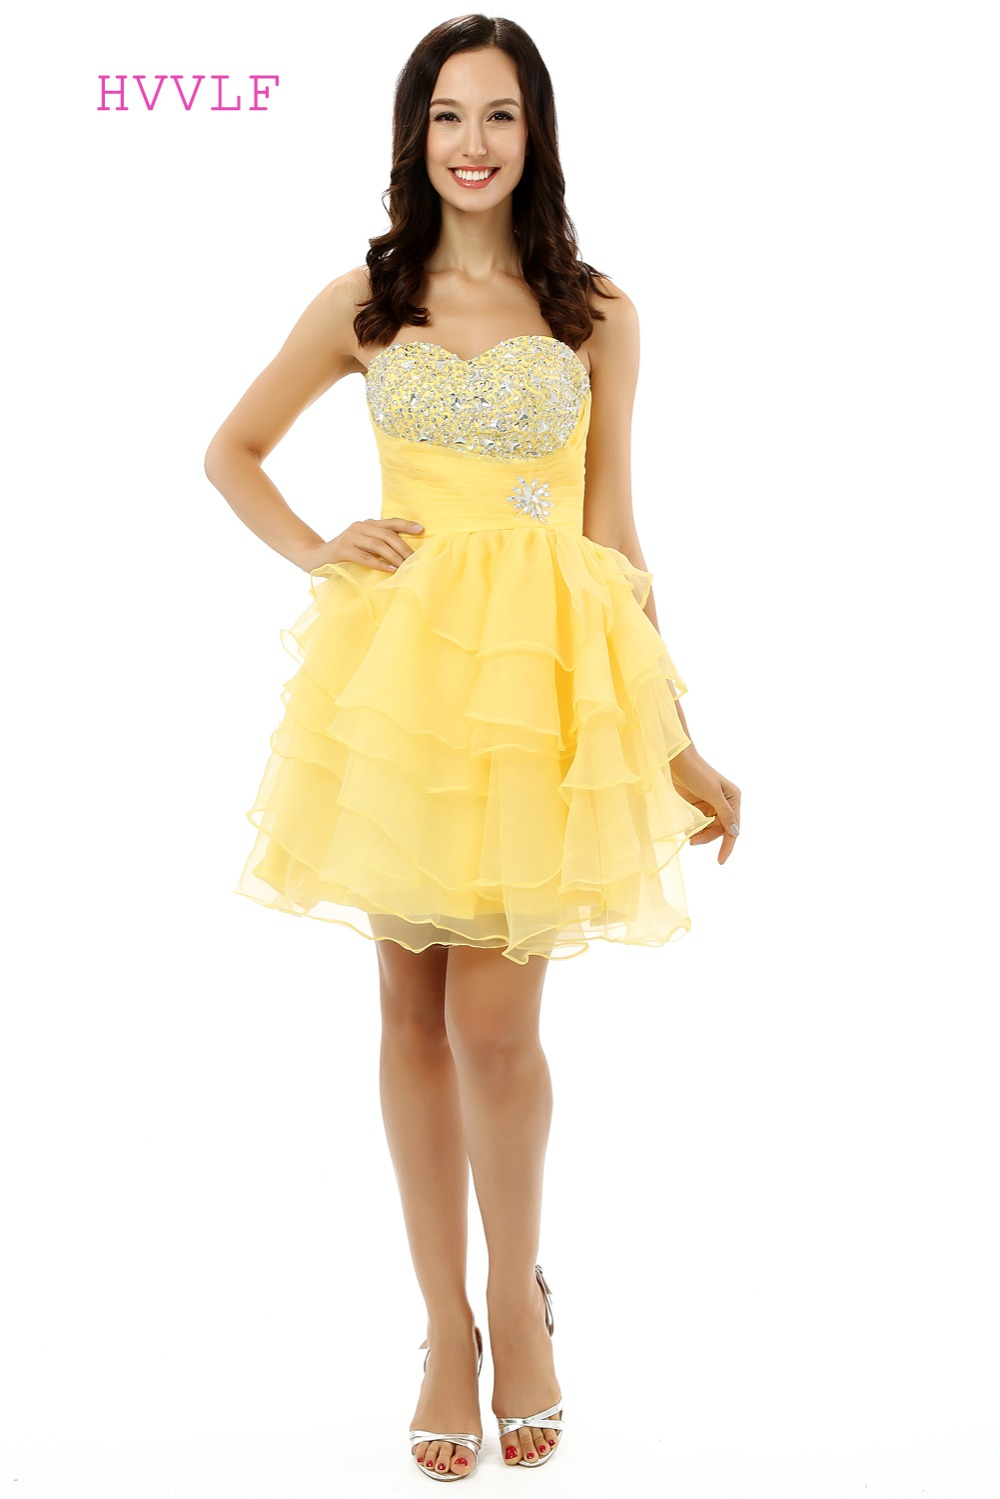 Yellow Homecoming Dresses A-line Sweetheart Organza Beaded Crystals Short Mini Sparkly Sweet 16 Cocktail Dresses 2019